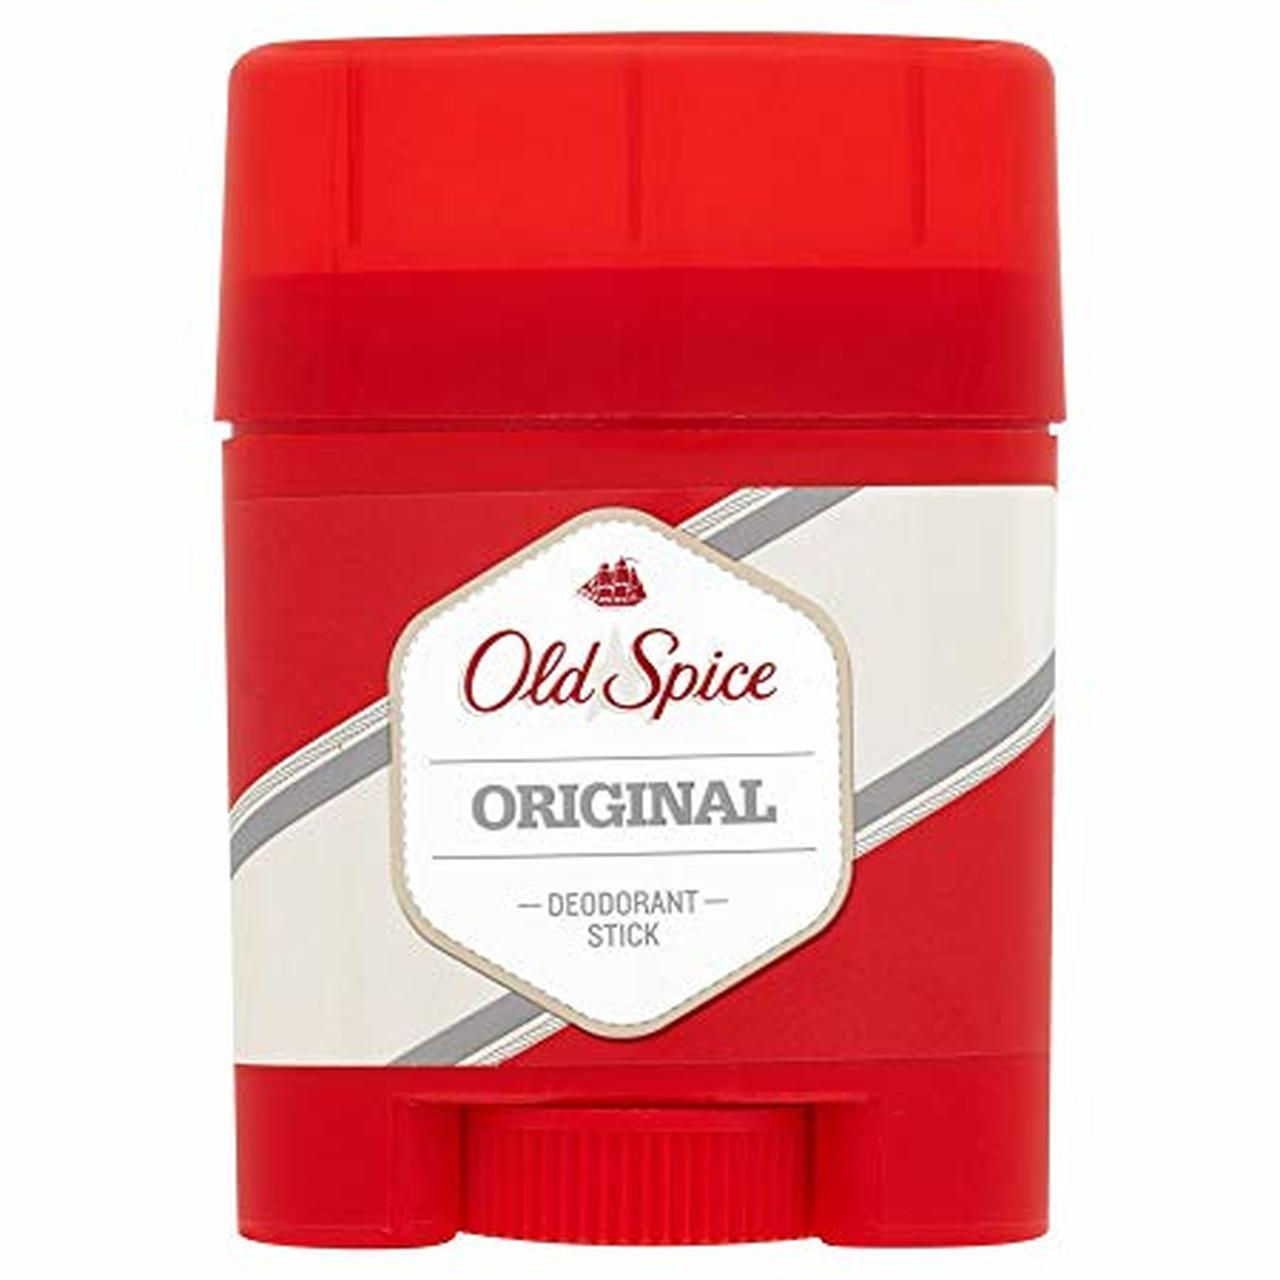 OLD SPICE ORIGINAL STICK DEODORANT 50G